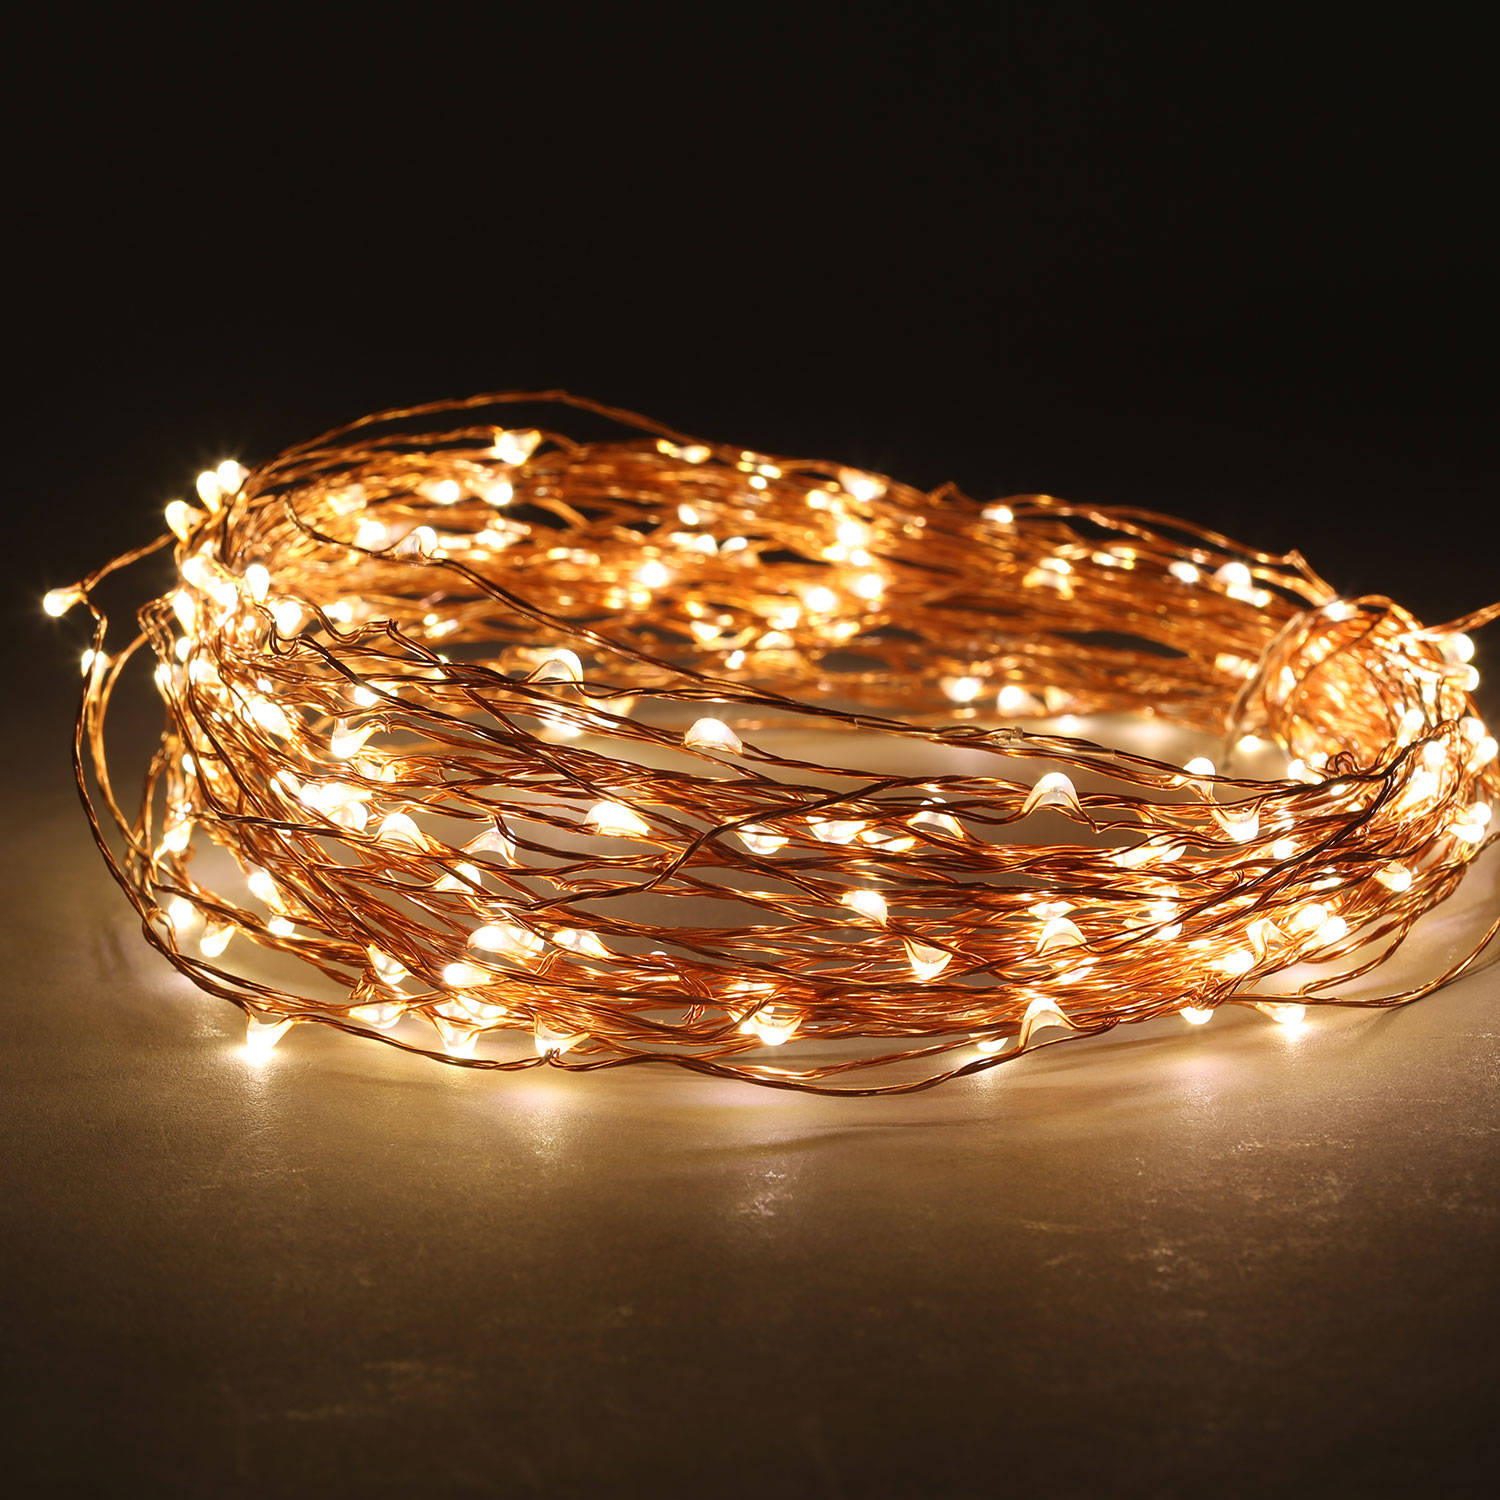 Christmas Led String Light Wiring Diagram Similiar For Images Ac Plug In On Moreover Copper